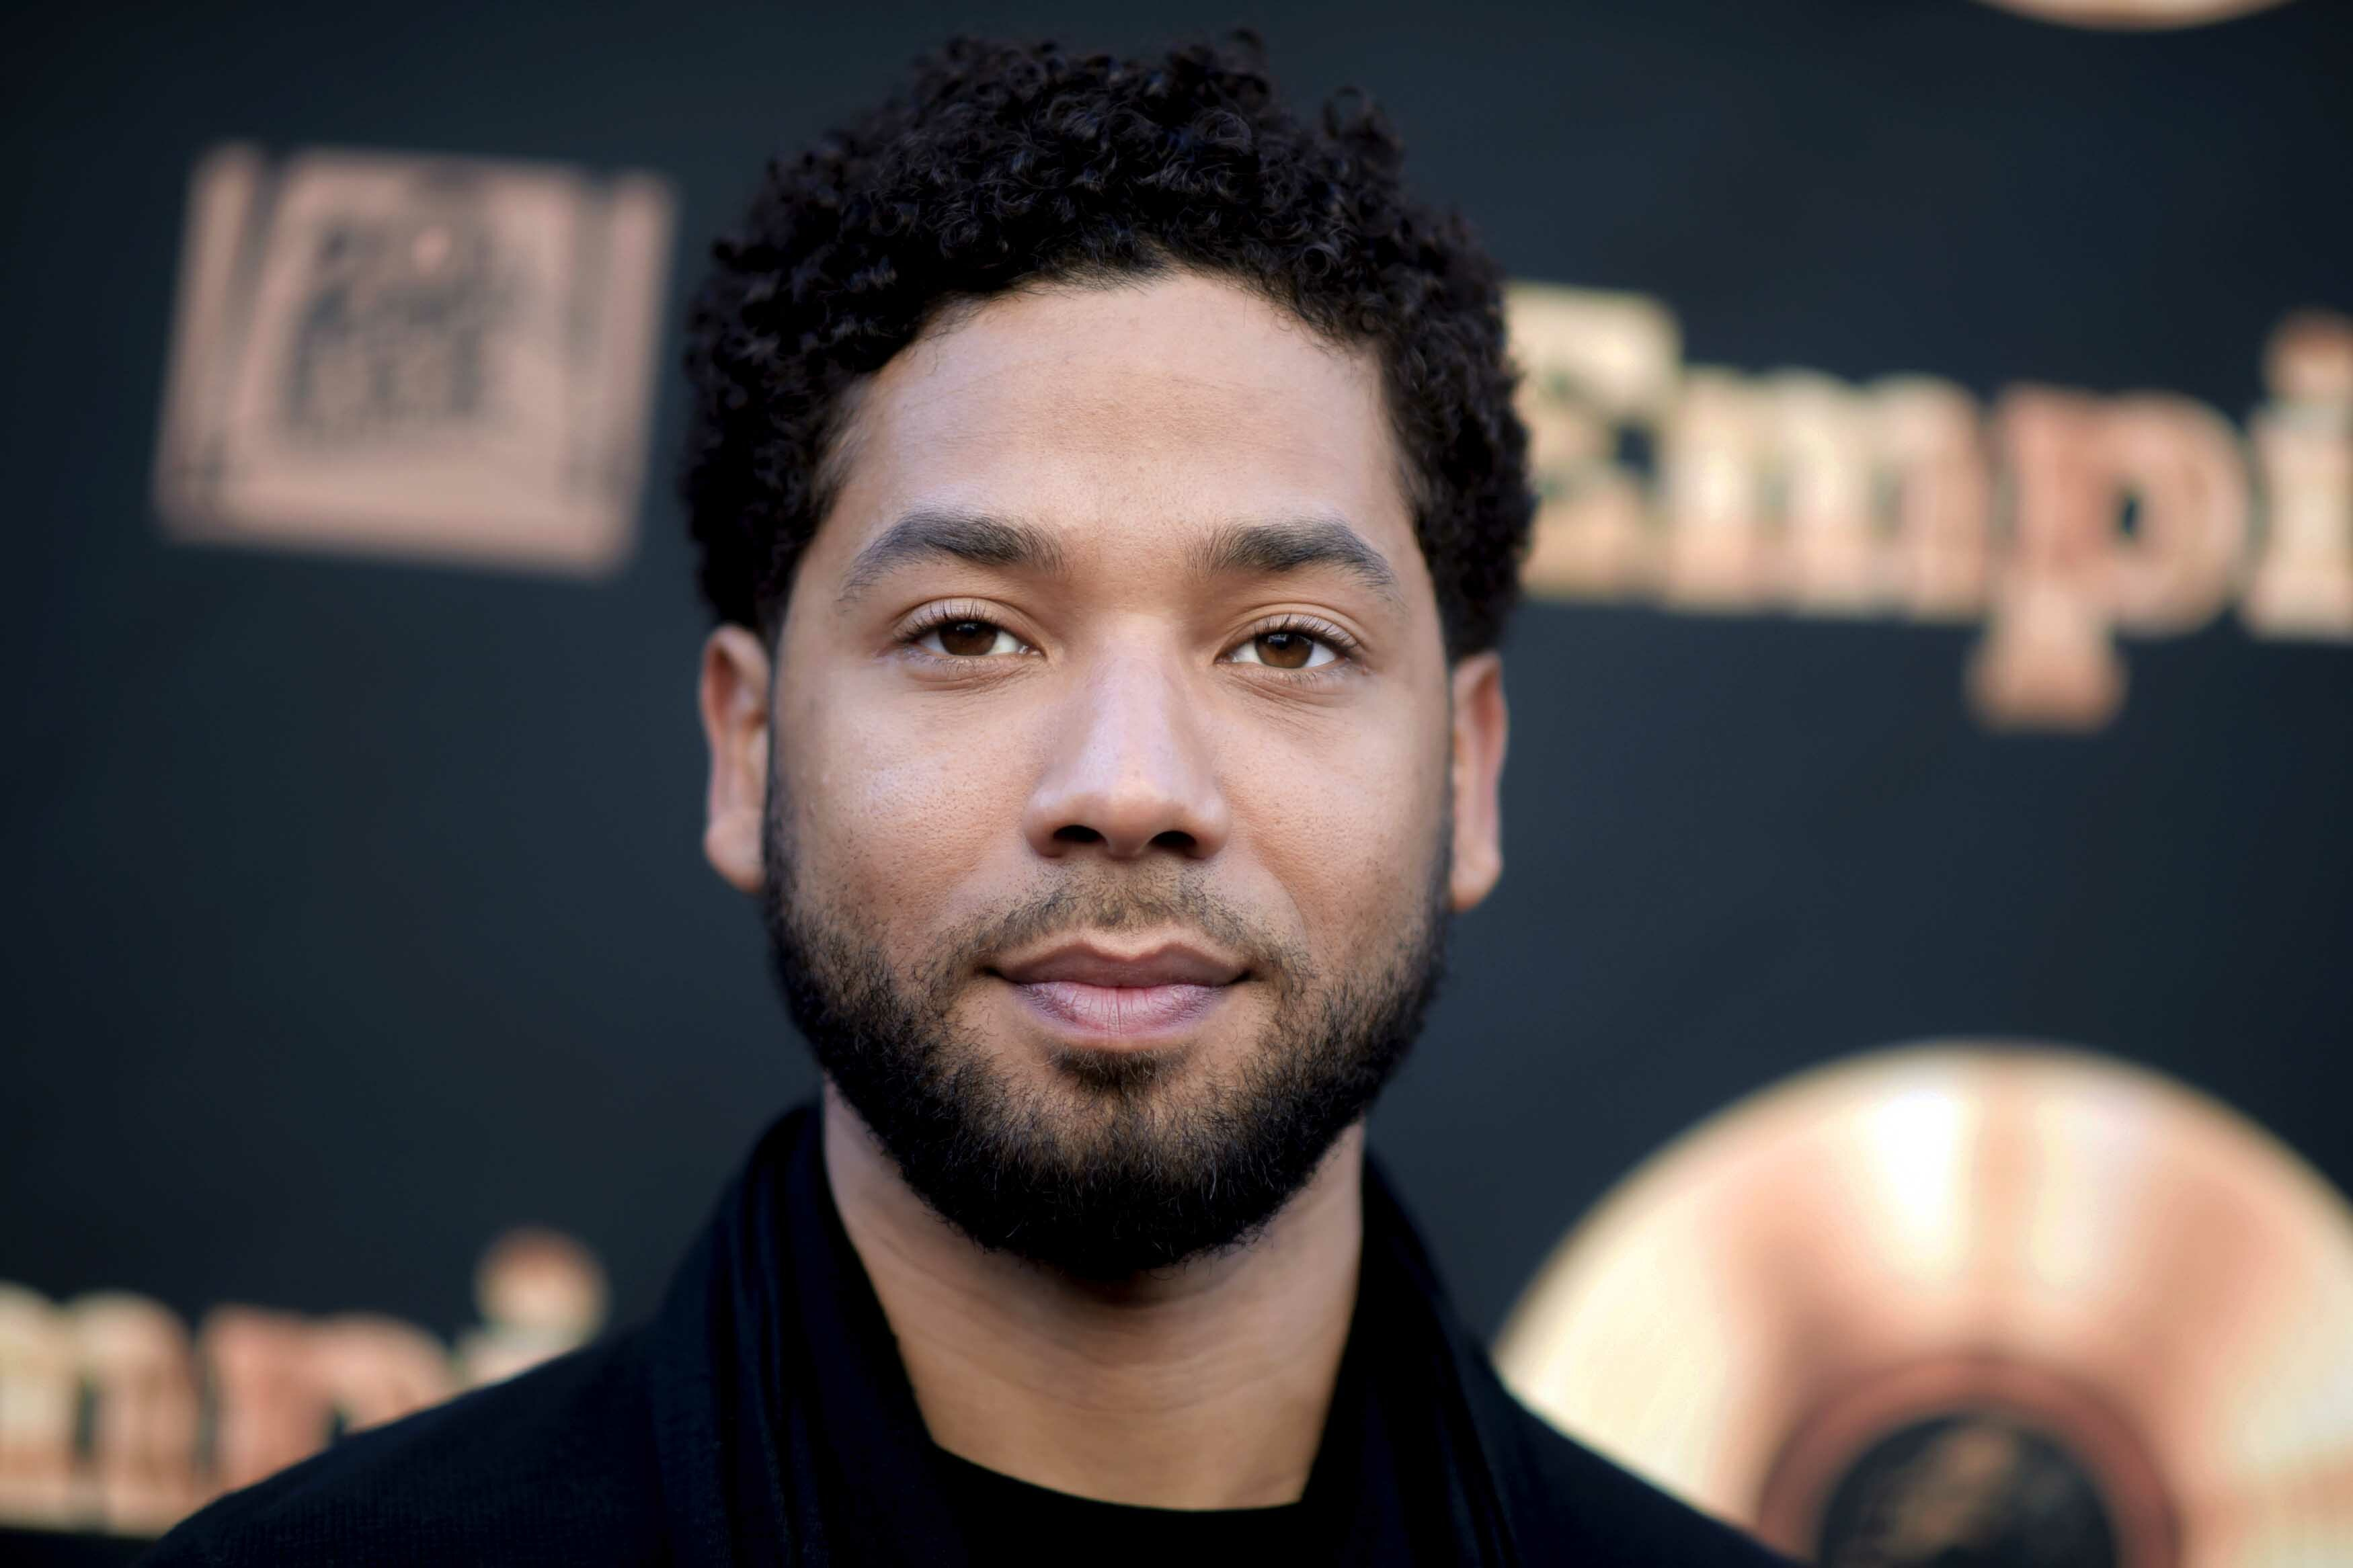 Jussie Smollett speaks out after alleged attack: 'My body is